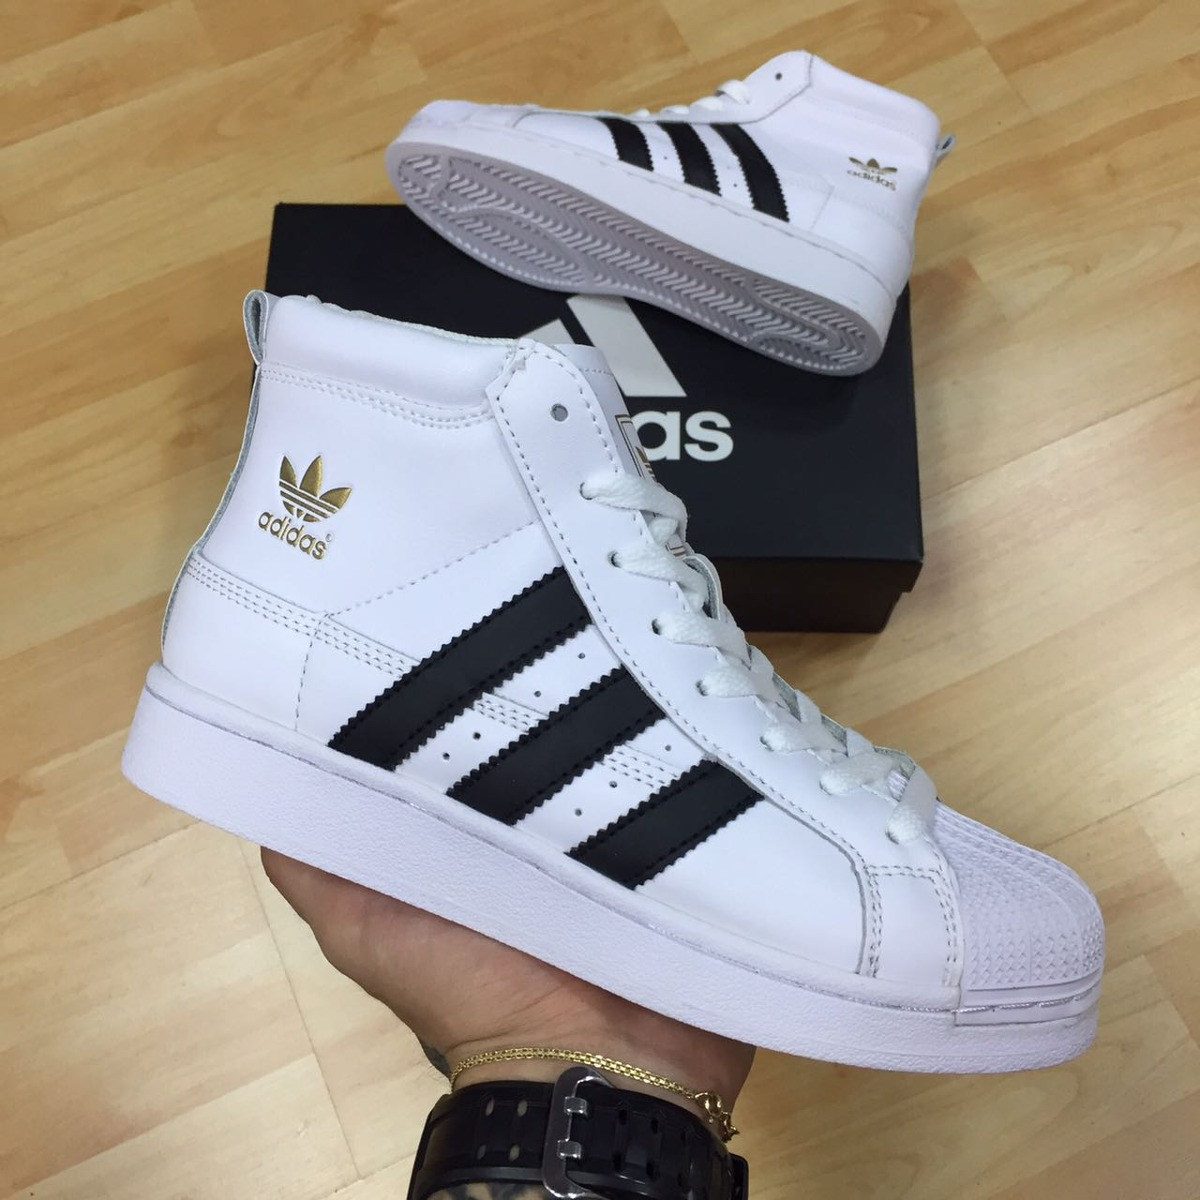 Free delivery - botas adidas superstar - OFF68% - lcyc ...